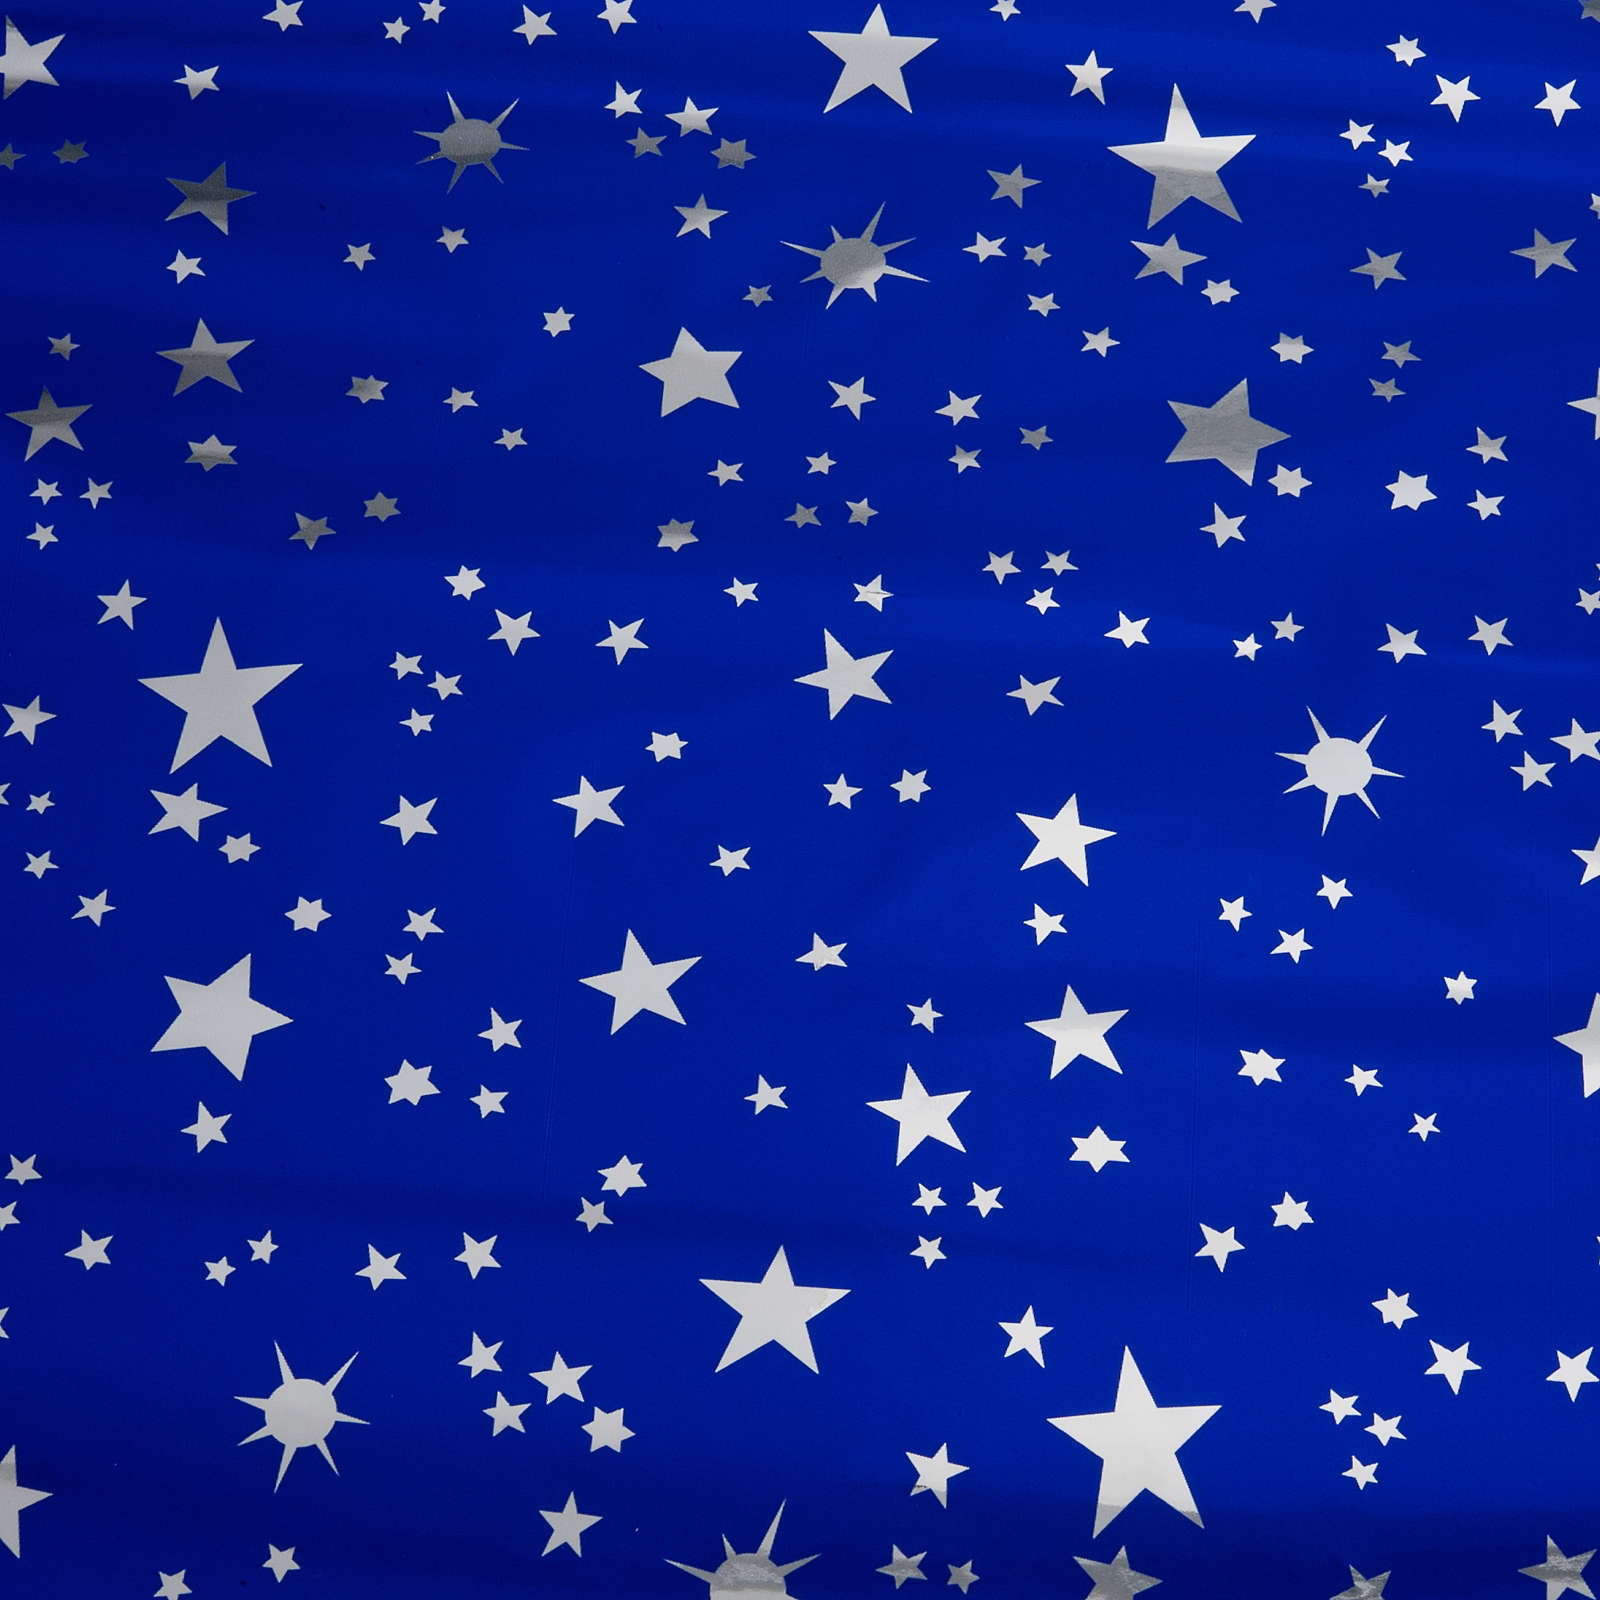 Nativity scene backdrop, sky with silver stars 70 x 100cm 4